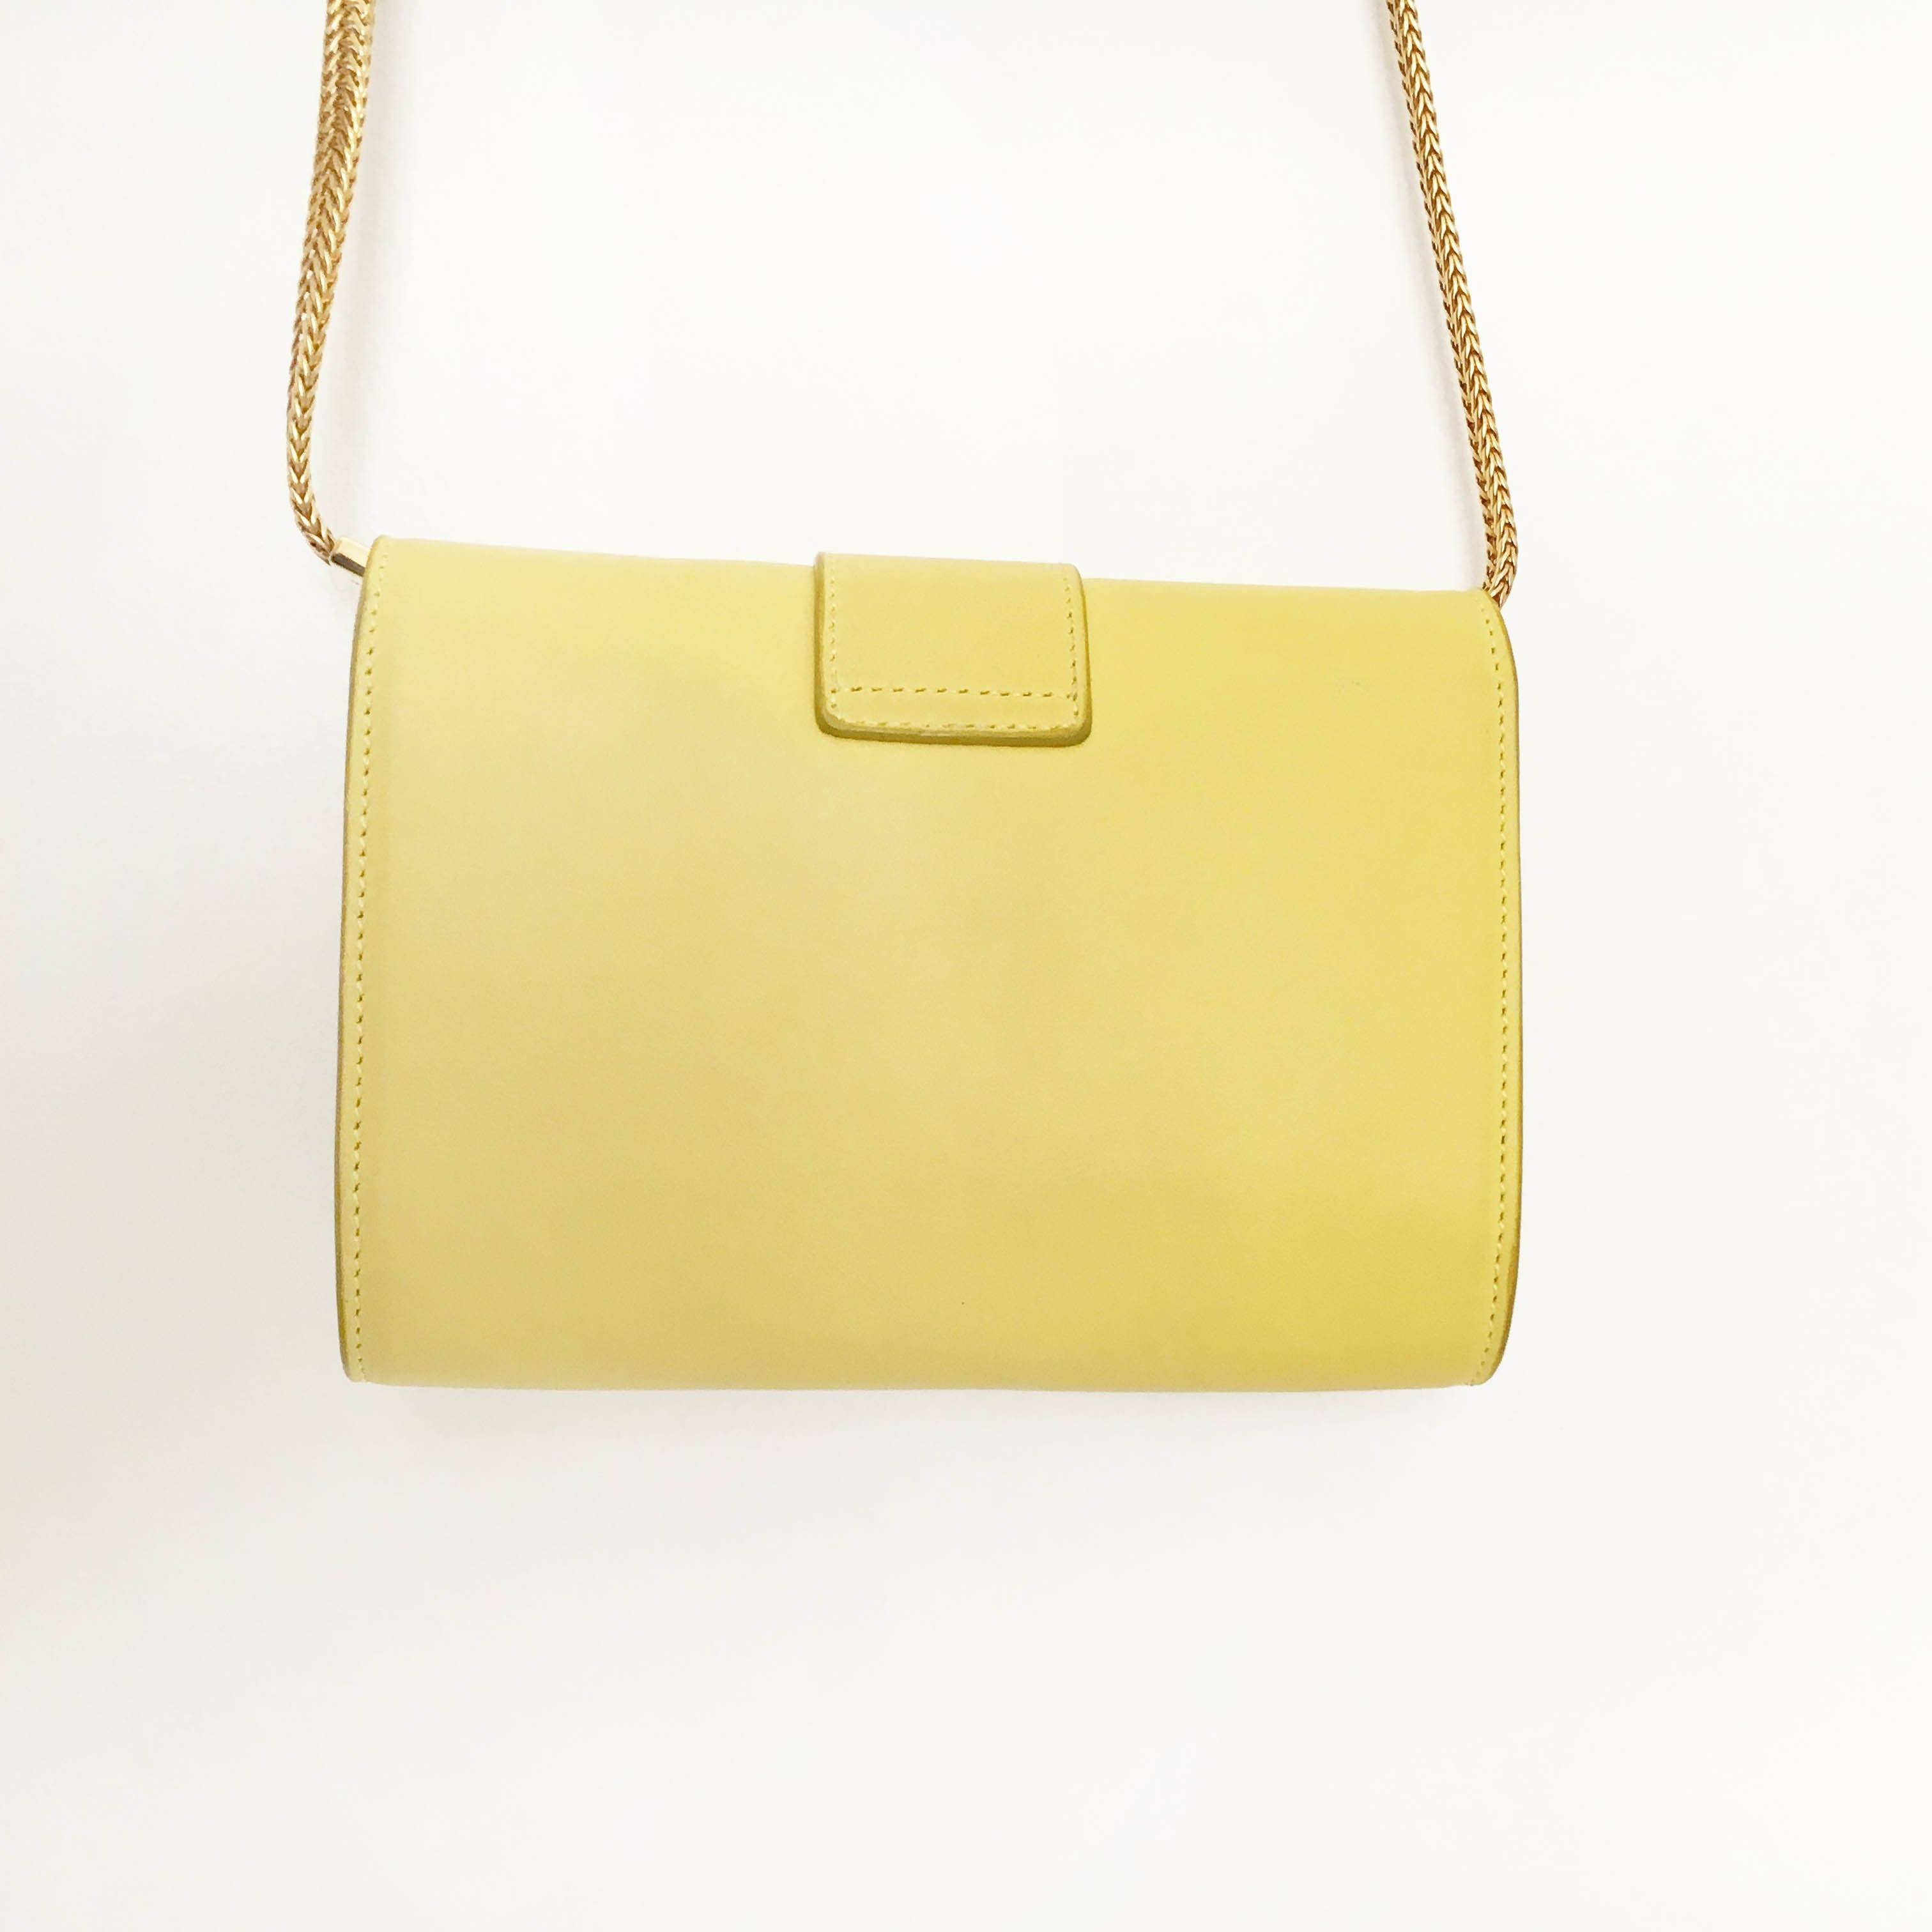 Saint Laurent CrossBody Yellow Bag